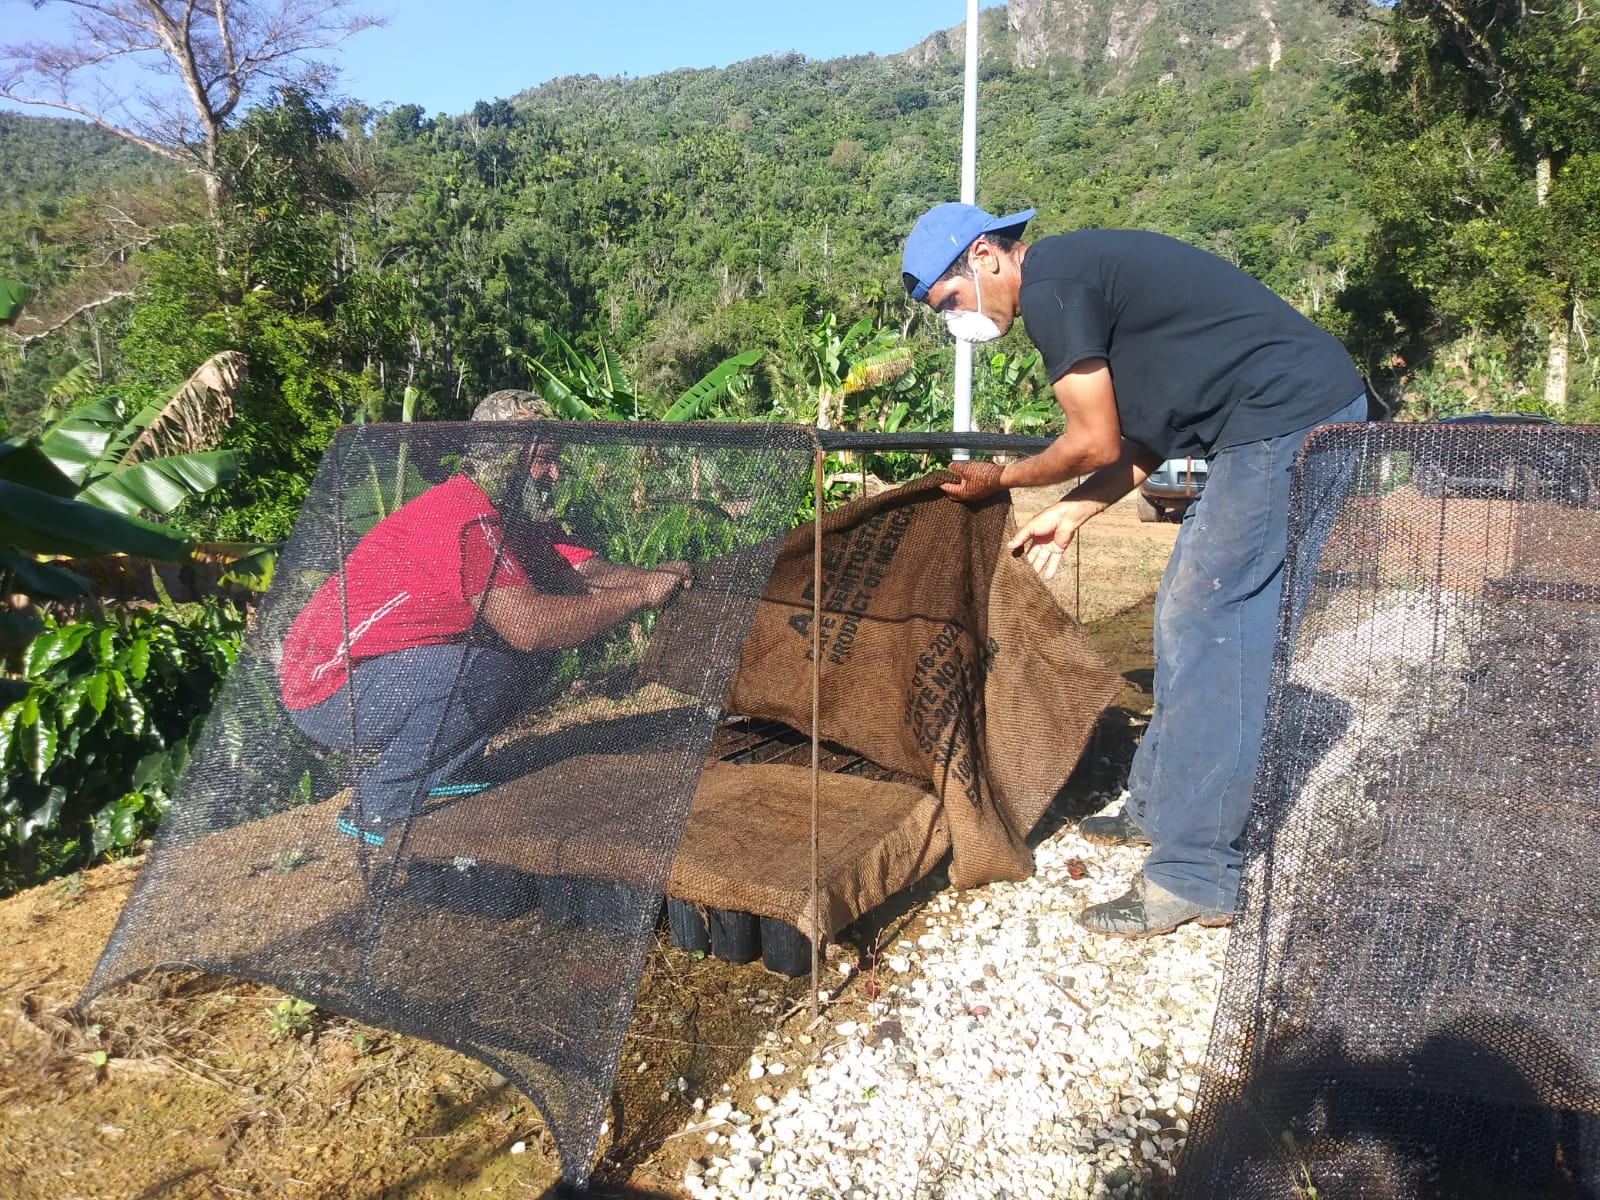 Coffee farmers in Puerto Rico work on their land